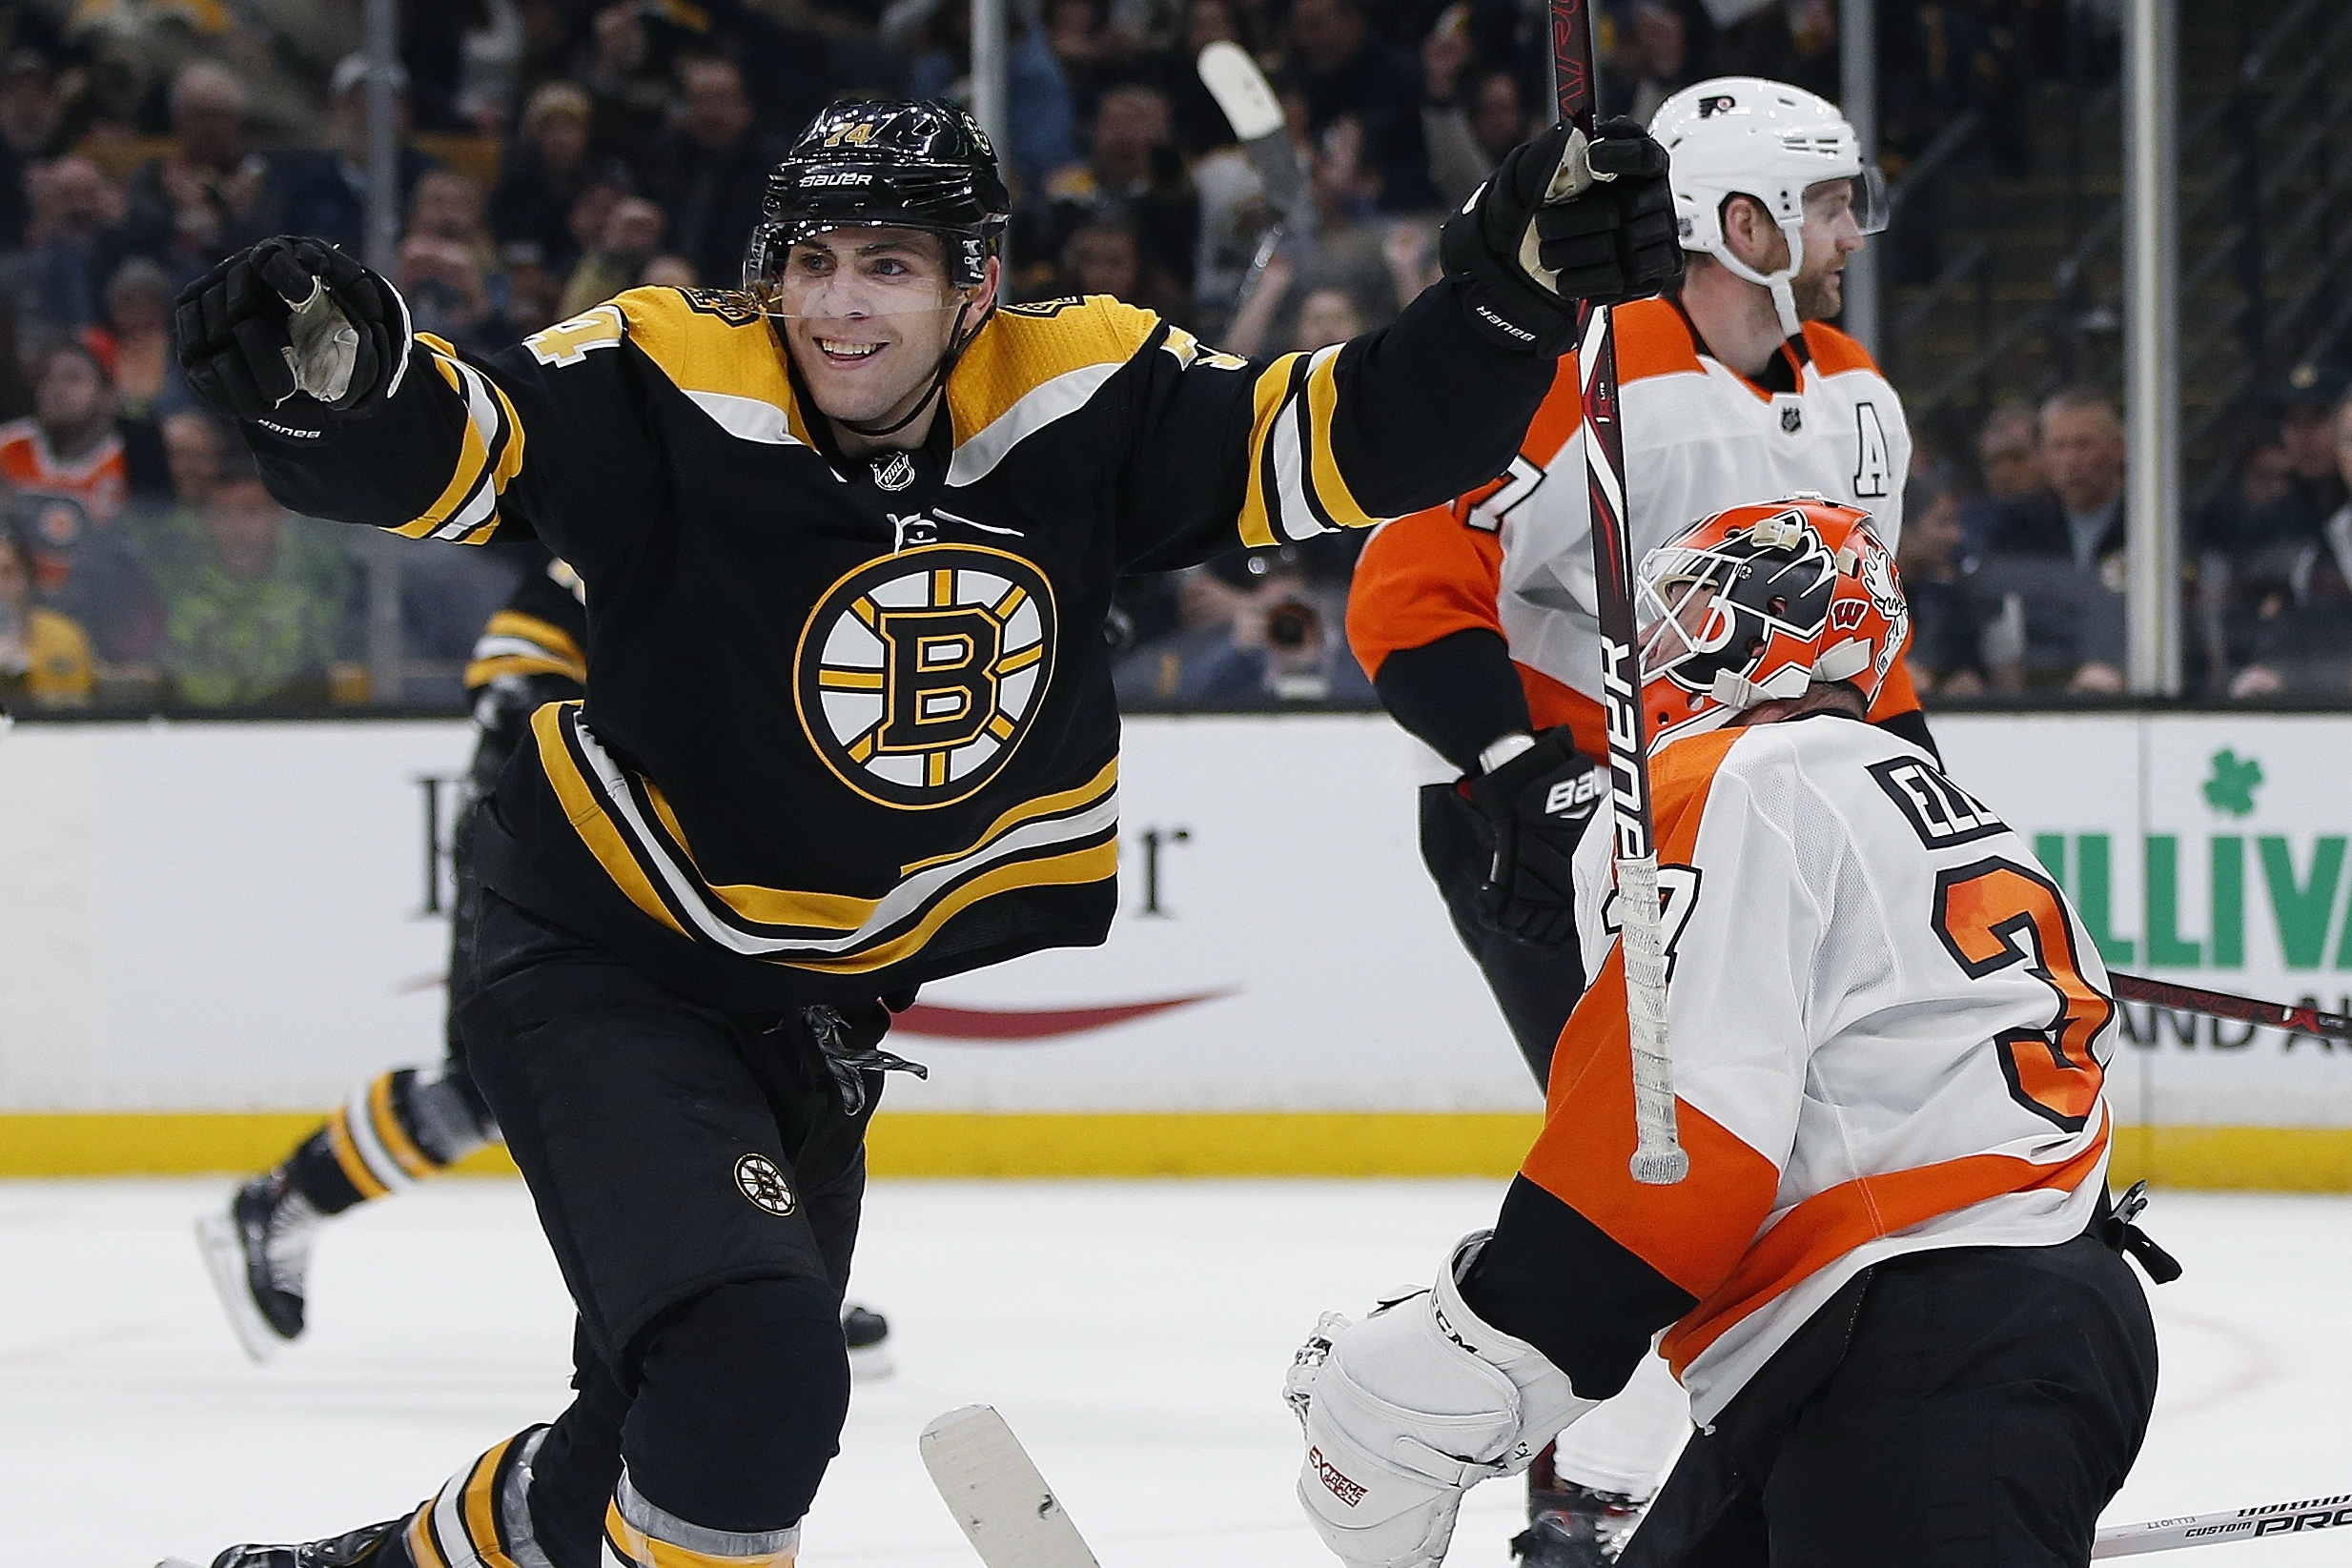 Chara scores twice, Halak stops 26 and Bruins top Flyers 3-0